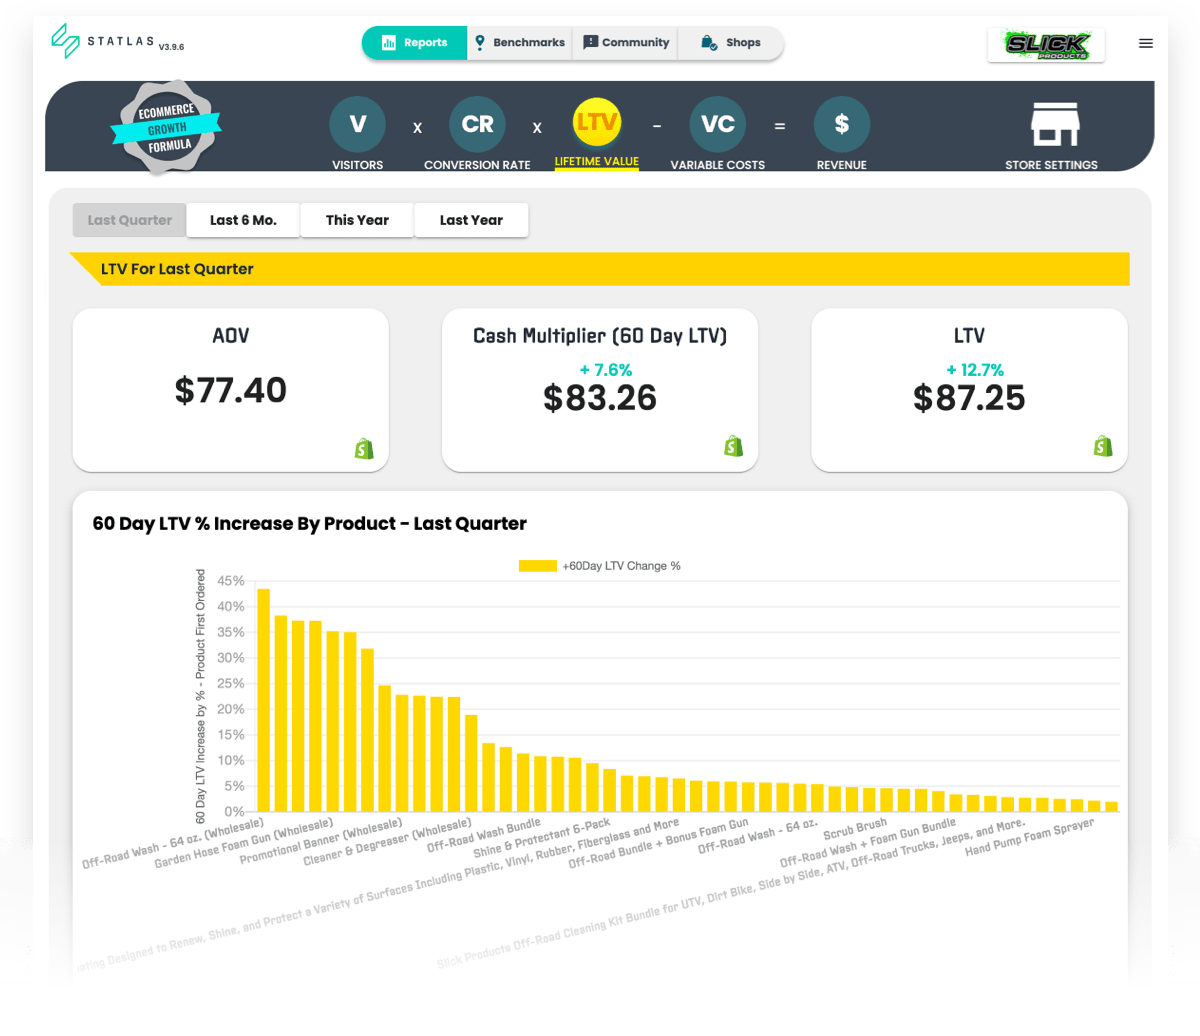 ecommerce analytics dashboard showing cash multiplier and LTV for Slick Products